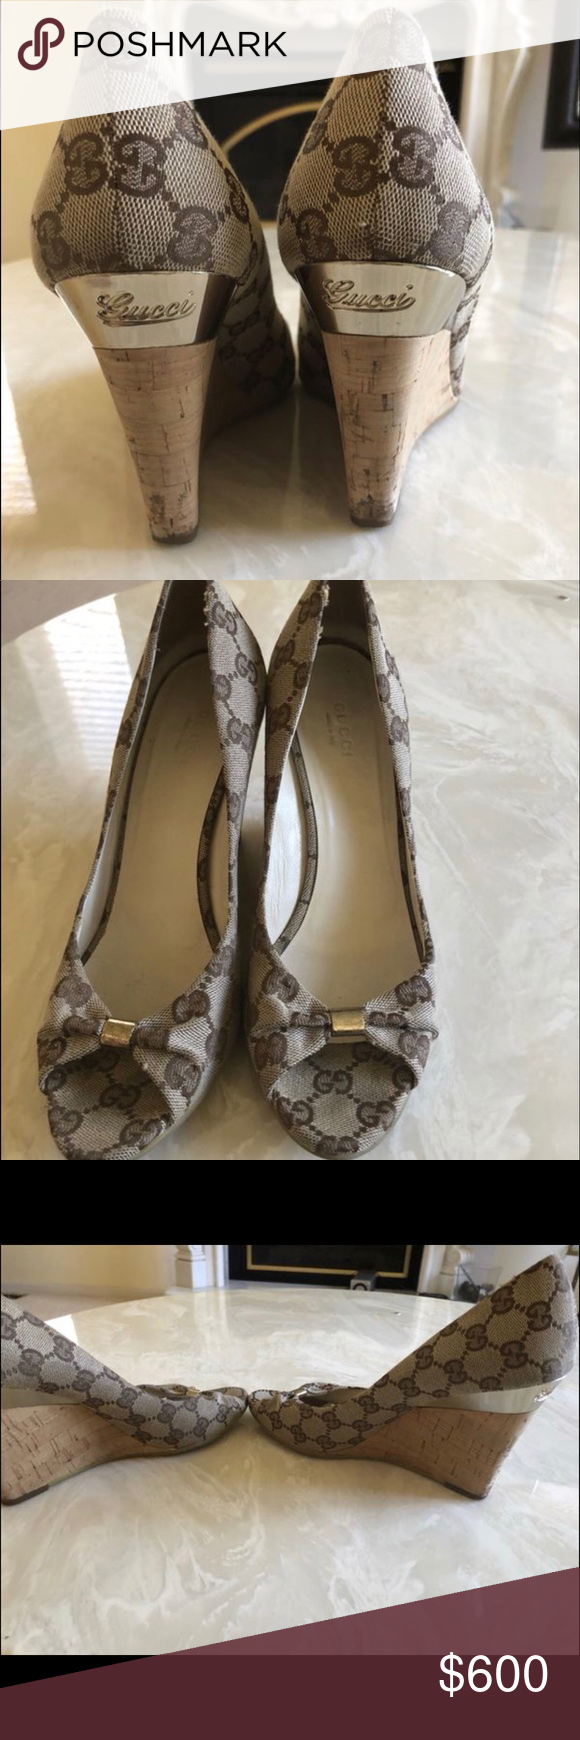 f04f00fdc80 SOLD Authentic Gucci Wedge Sandals Great condition. Only worn 3 times. Gucci  Shoes Wedges